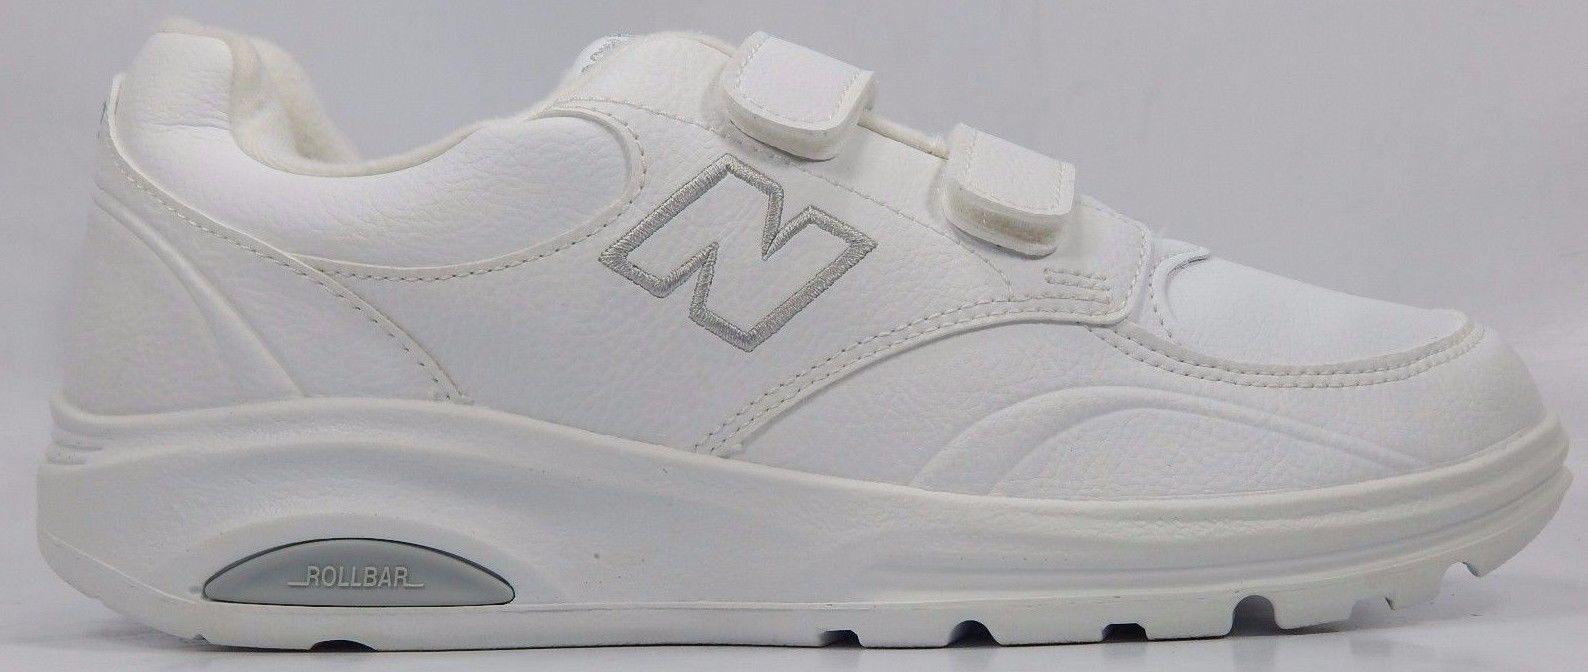 New Balance 812 Men's Walking Shoes Size US 8.5 M (D) EU 42 White MW812VW